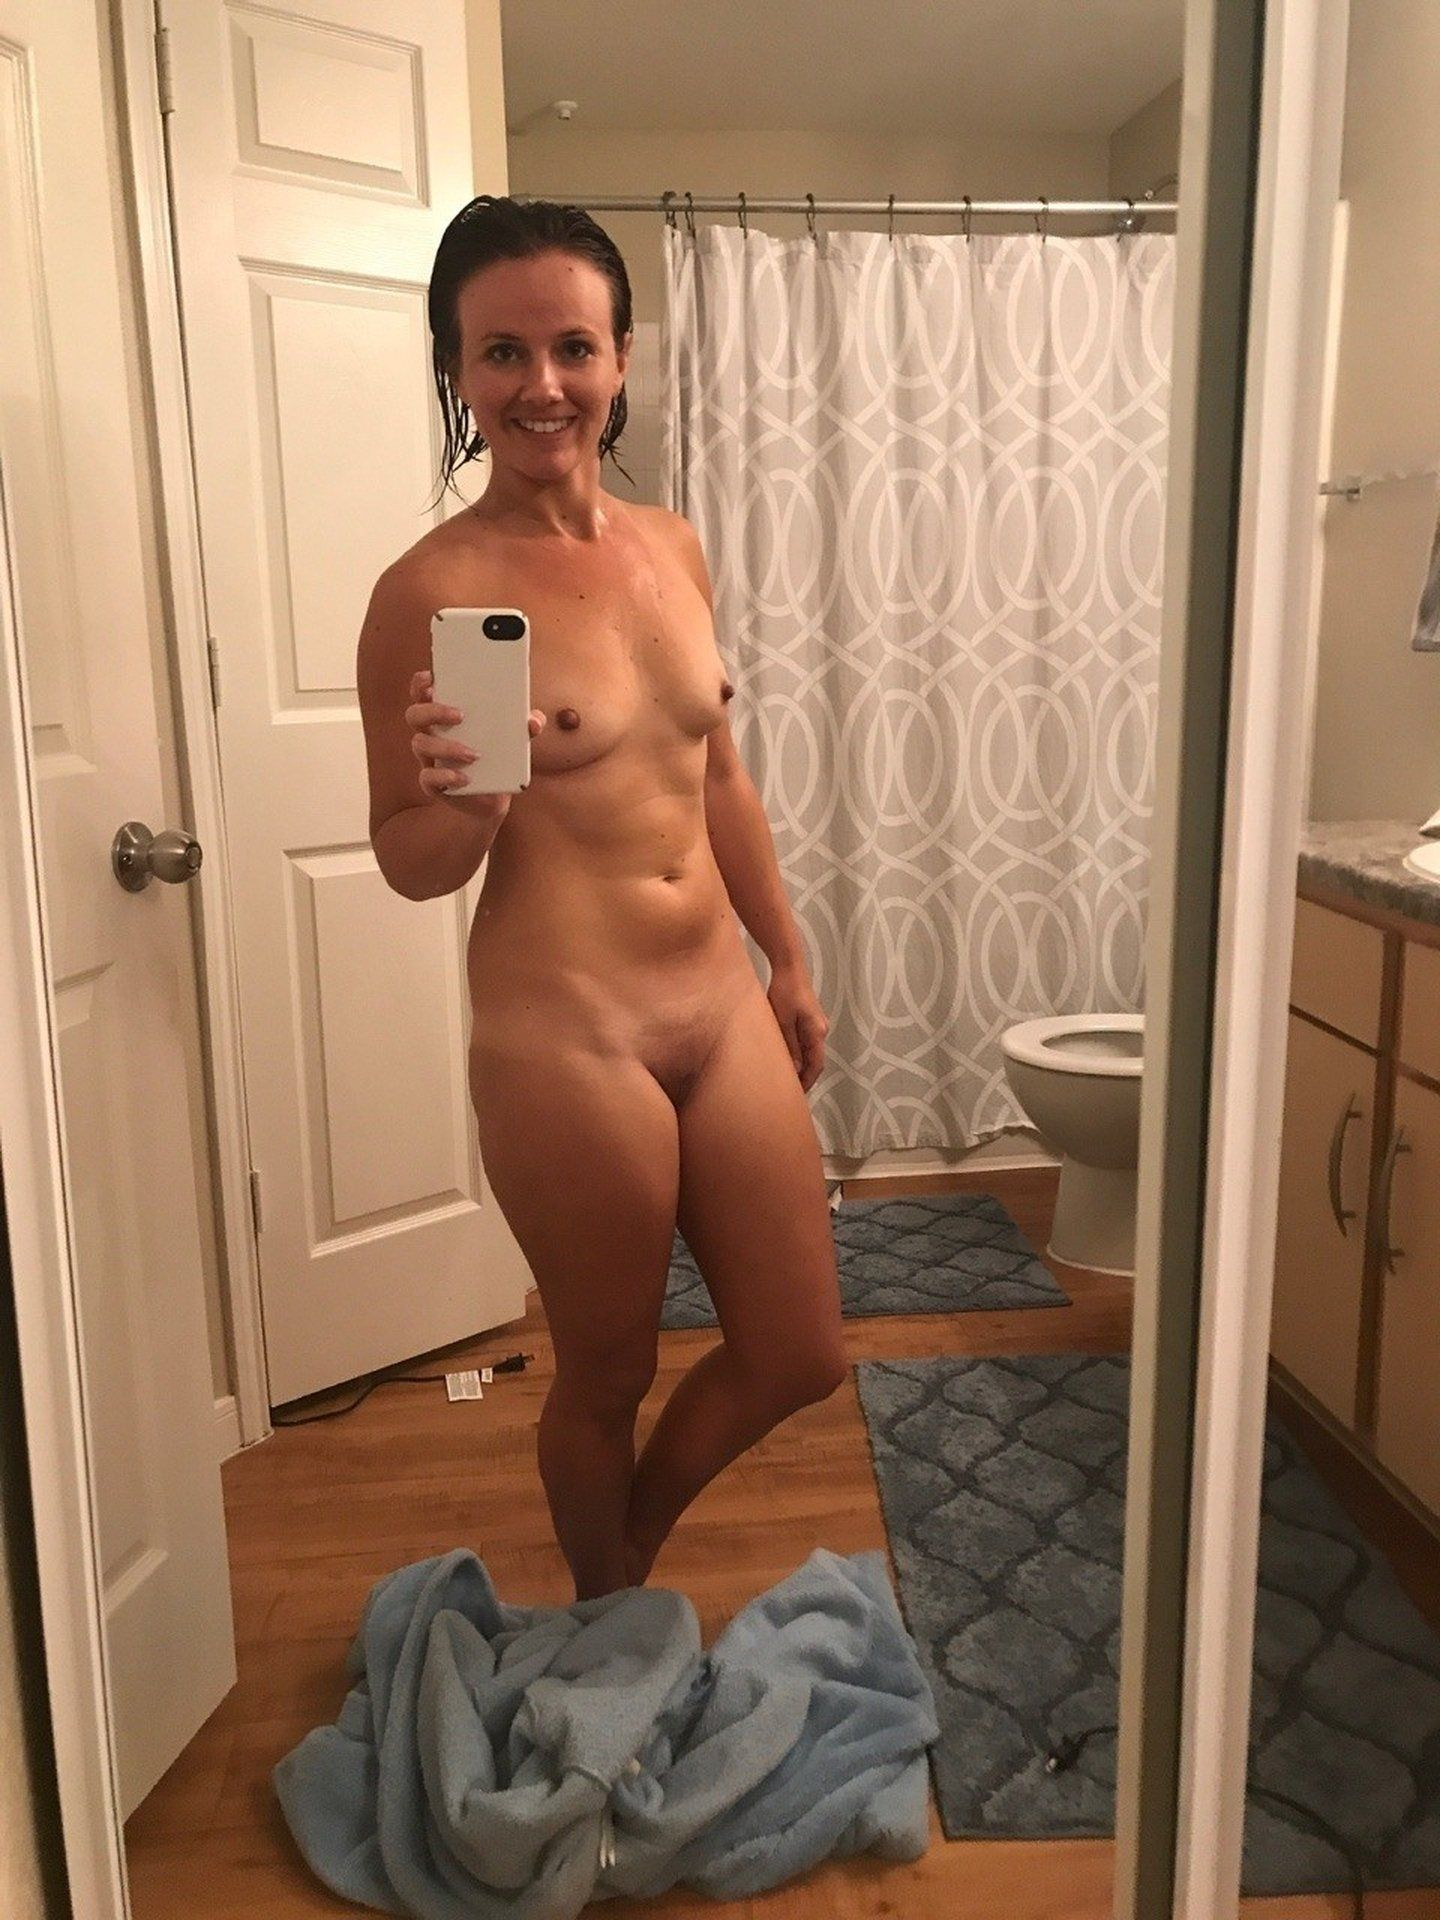 Naughty MILF reveals her gorgeous body in the bathroom. Ravishing amateur wife takes picture of her juicy body by herself